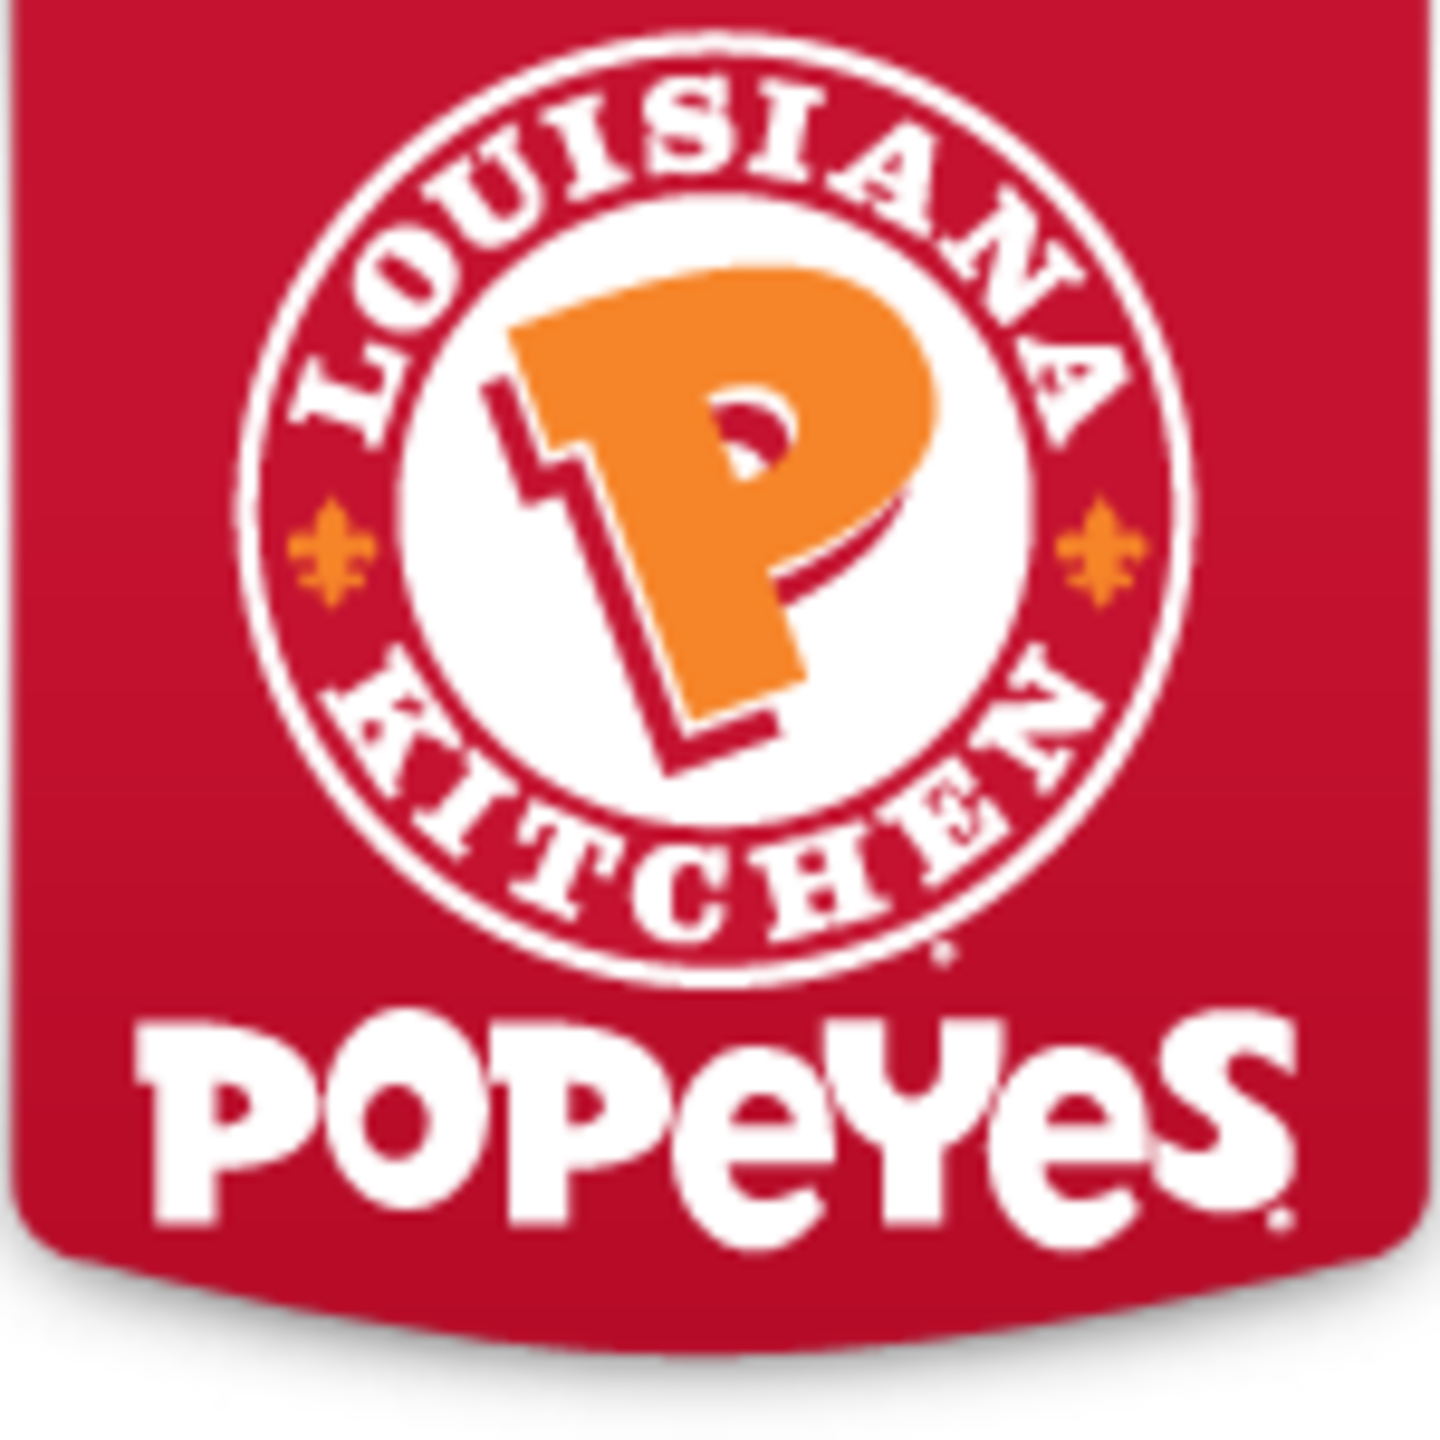 HiDubai-business-popeyes-food-beverage-restaurants-bars-al-muraqqabat-dubai-2